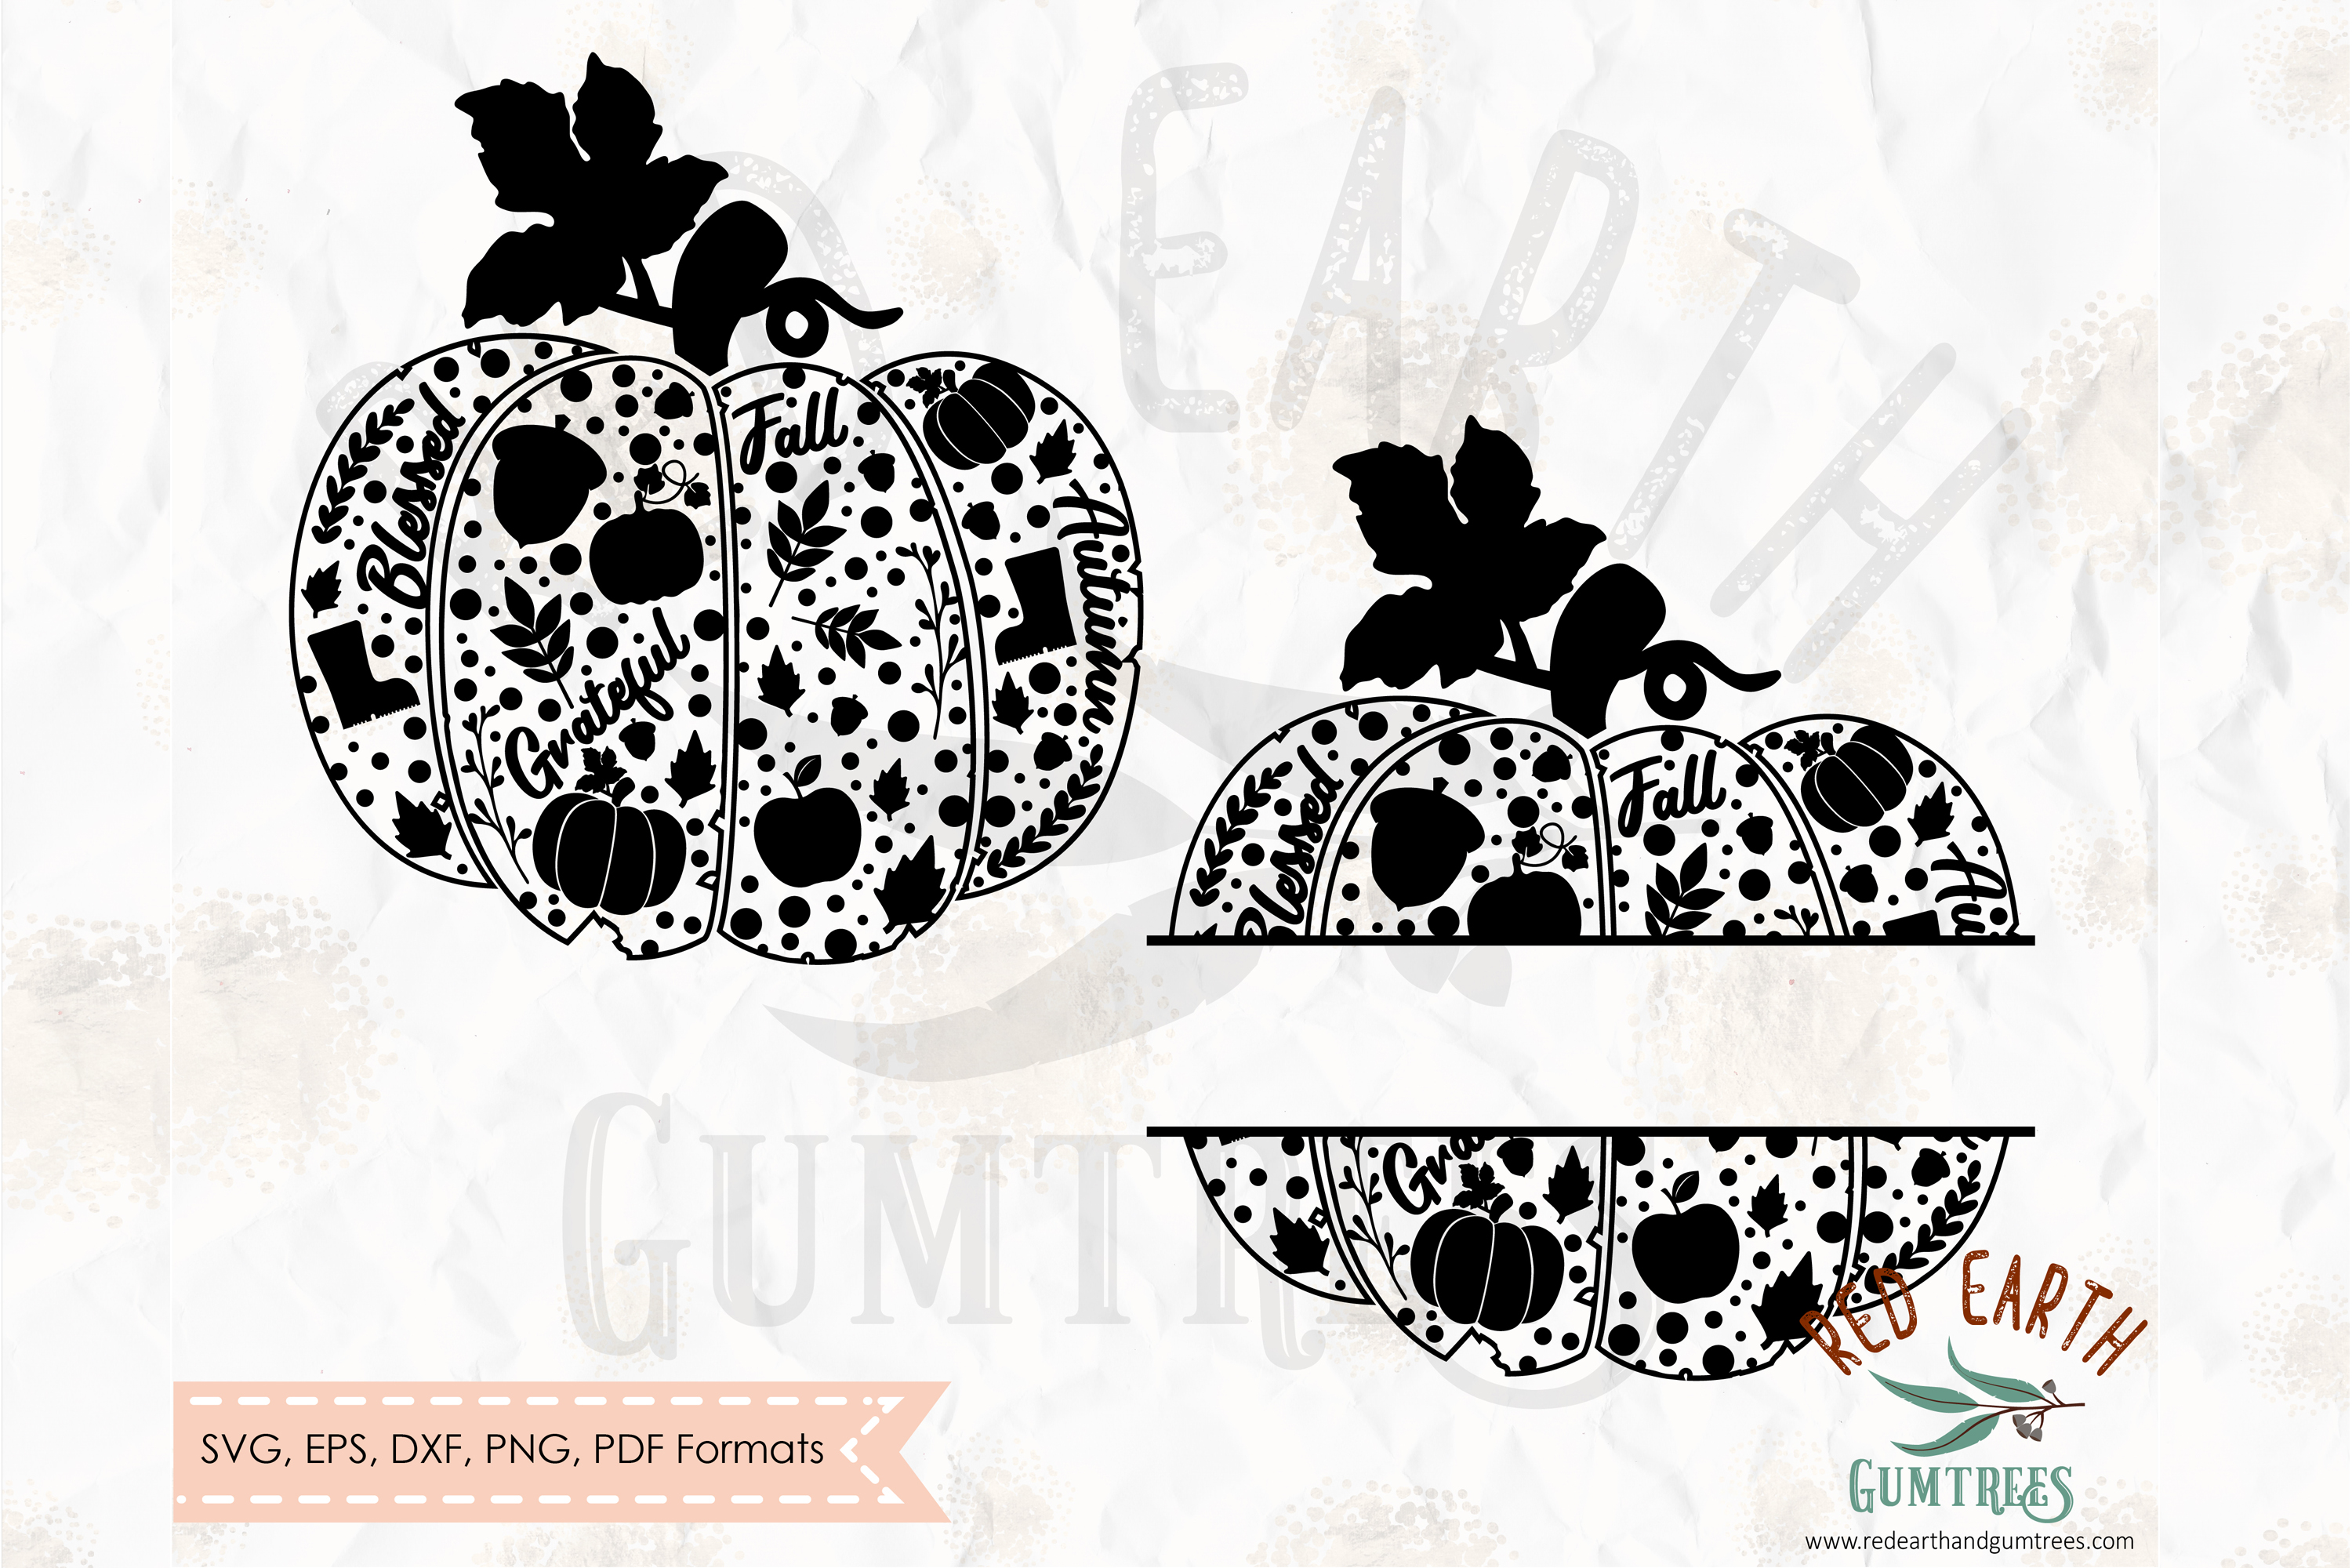 Pumpkin split monogram frame, Pumpkin decorated SVG,DXF,PNG example image 1